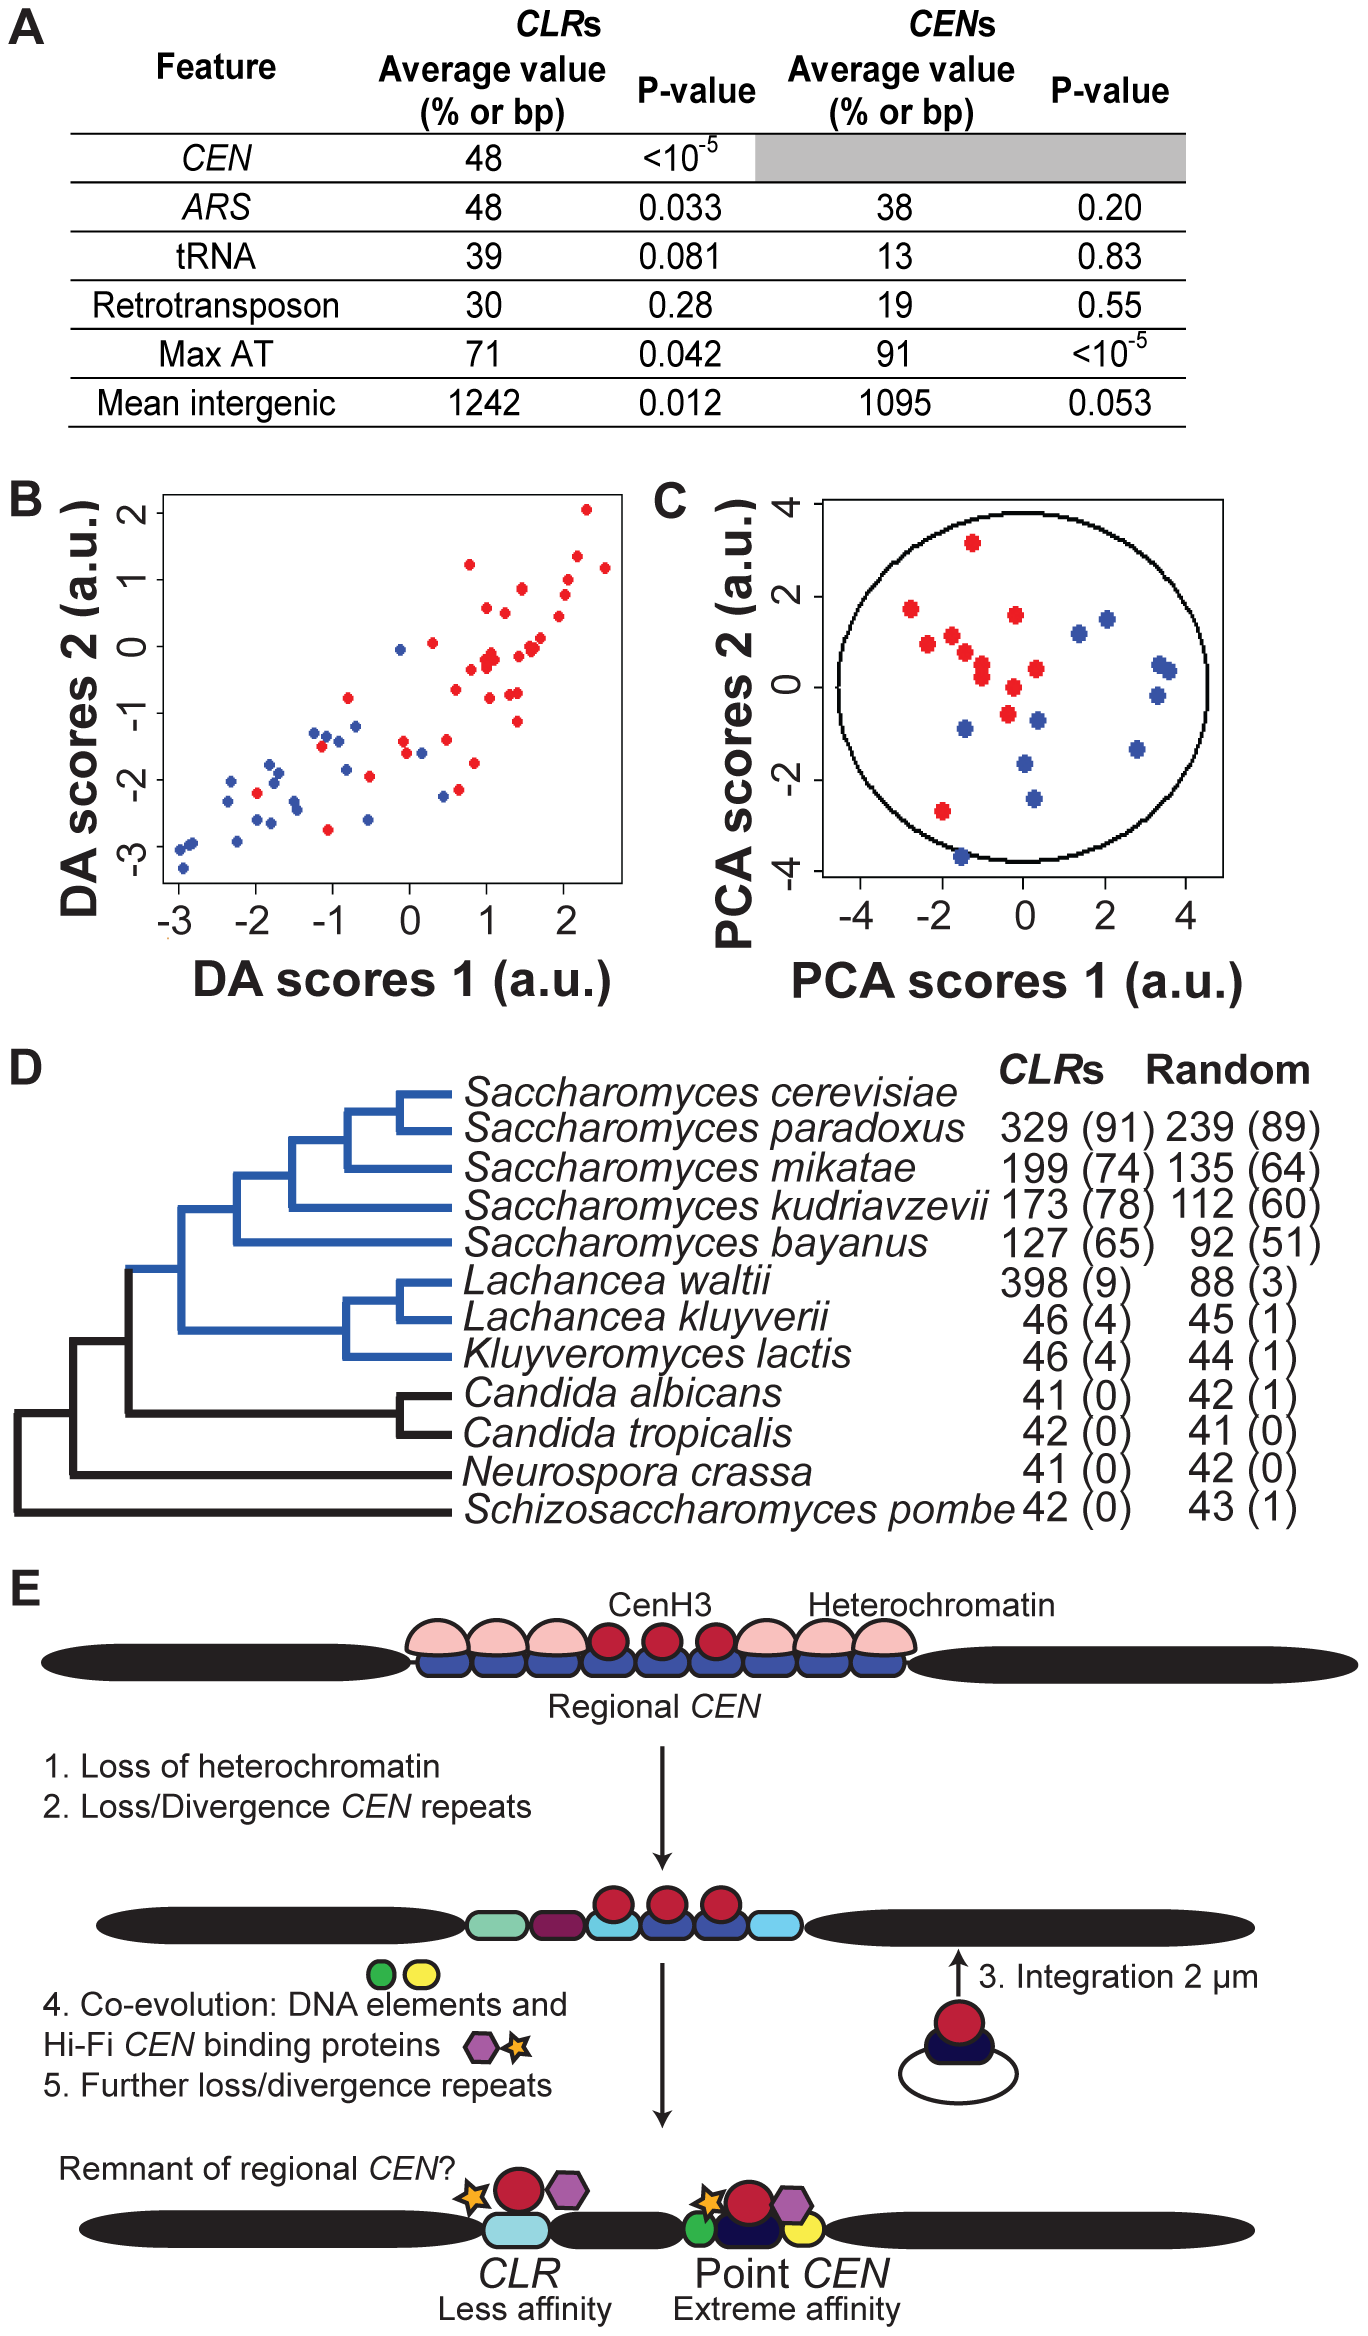 Genomic features of <i>CLR</i>s.